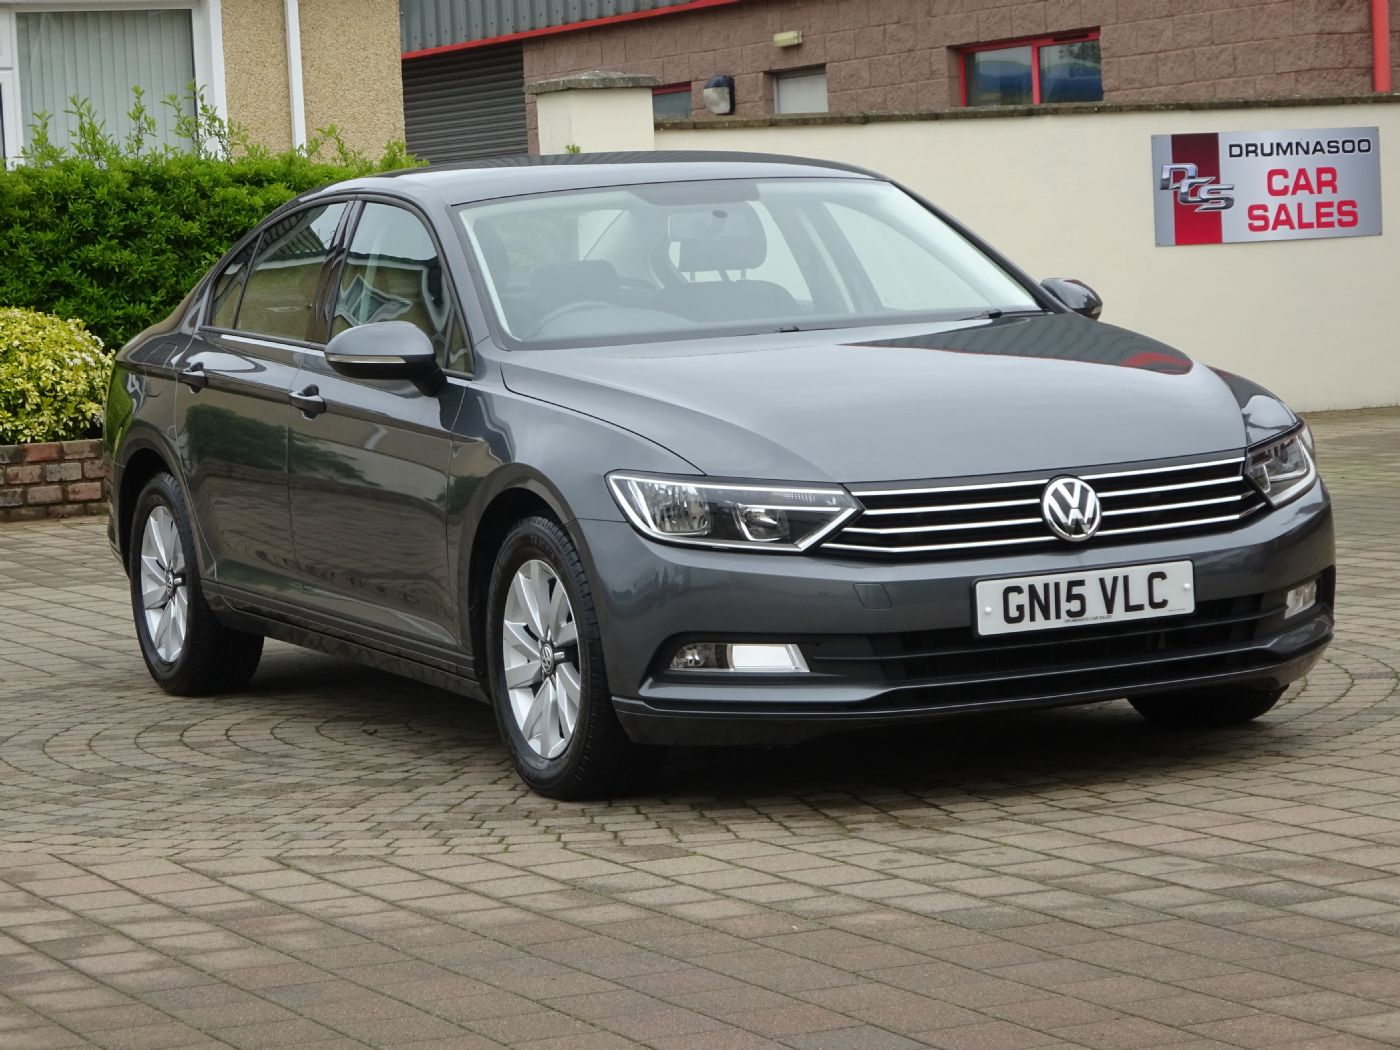 Volkswagen Passat S 1.6 TDI Bluemotion Tech. £20 Road tax